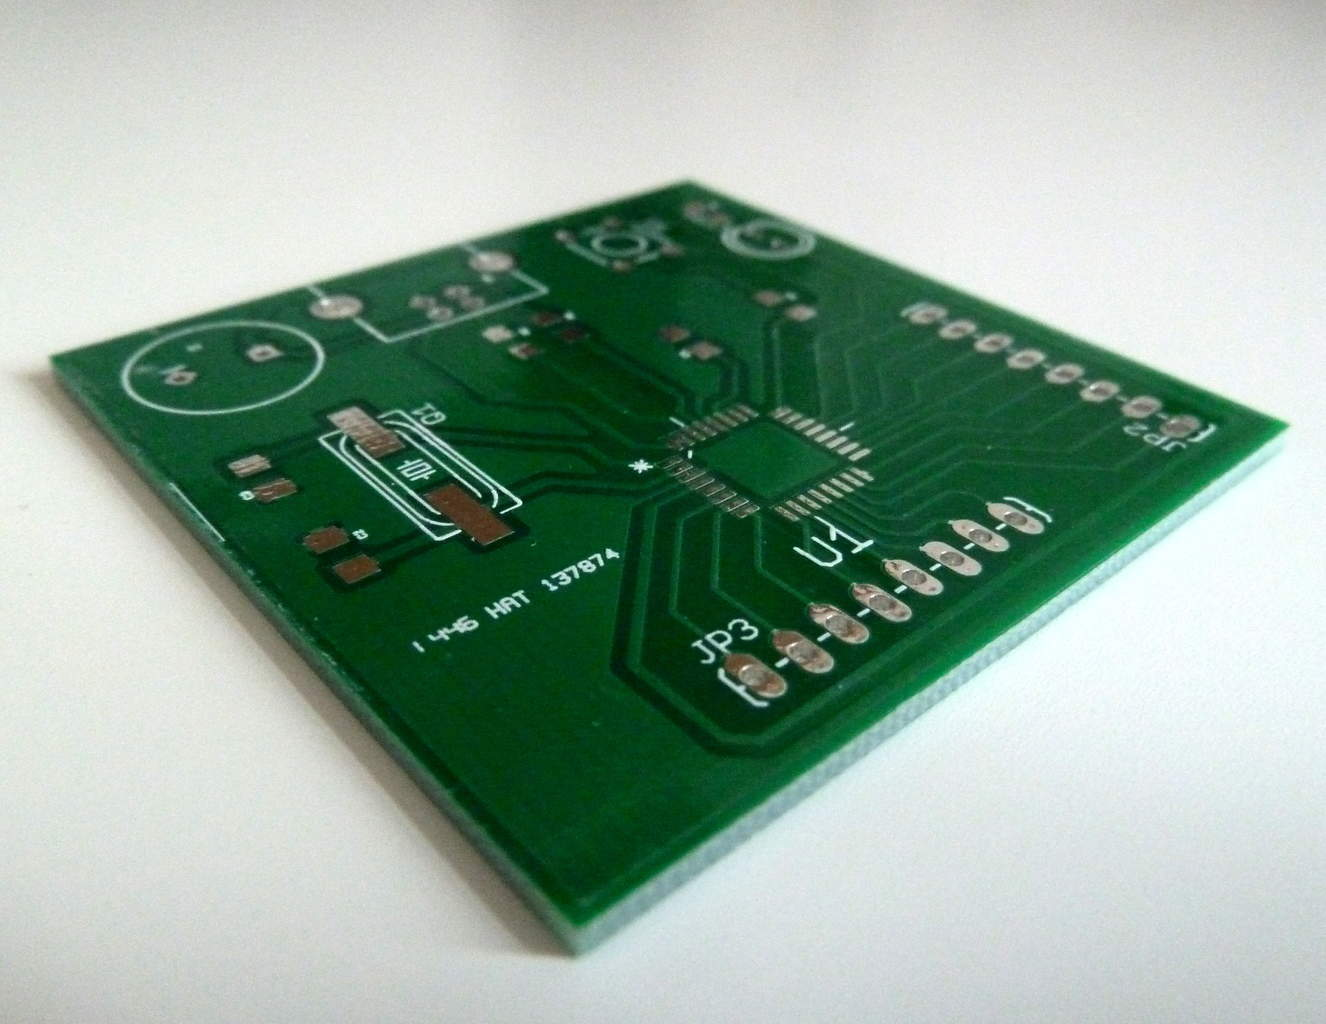 why learn to make printed circuit boards? build electronic circuits